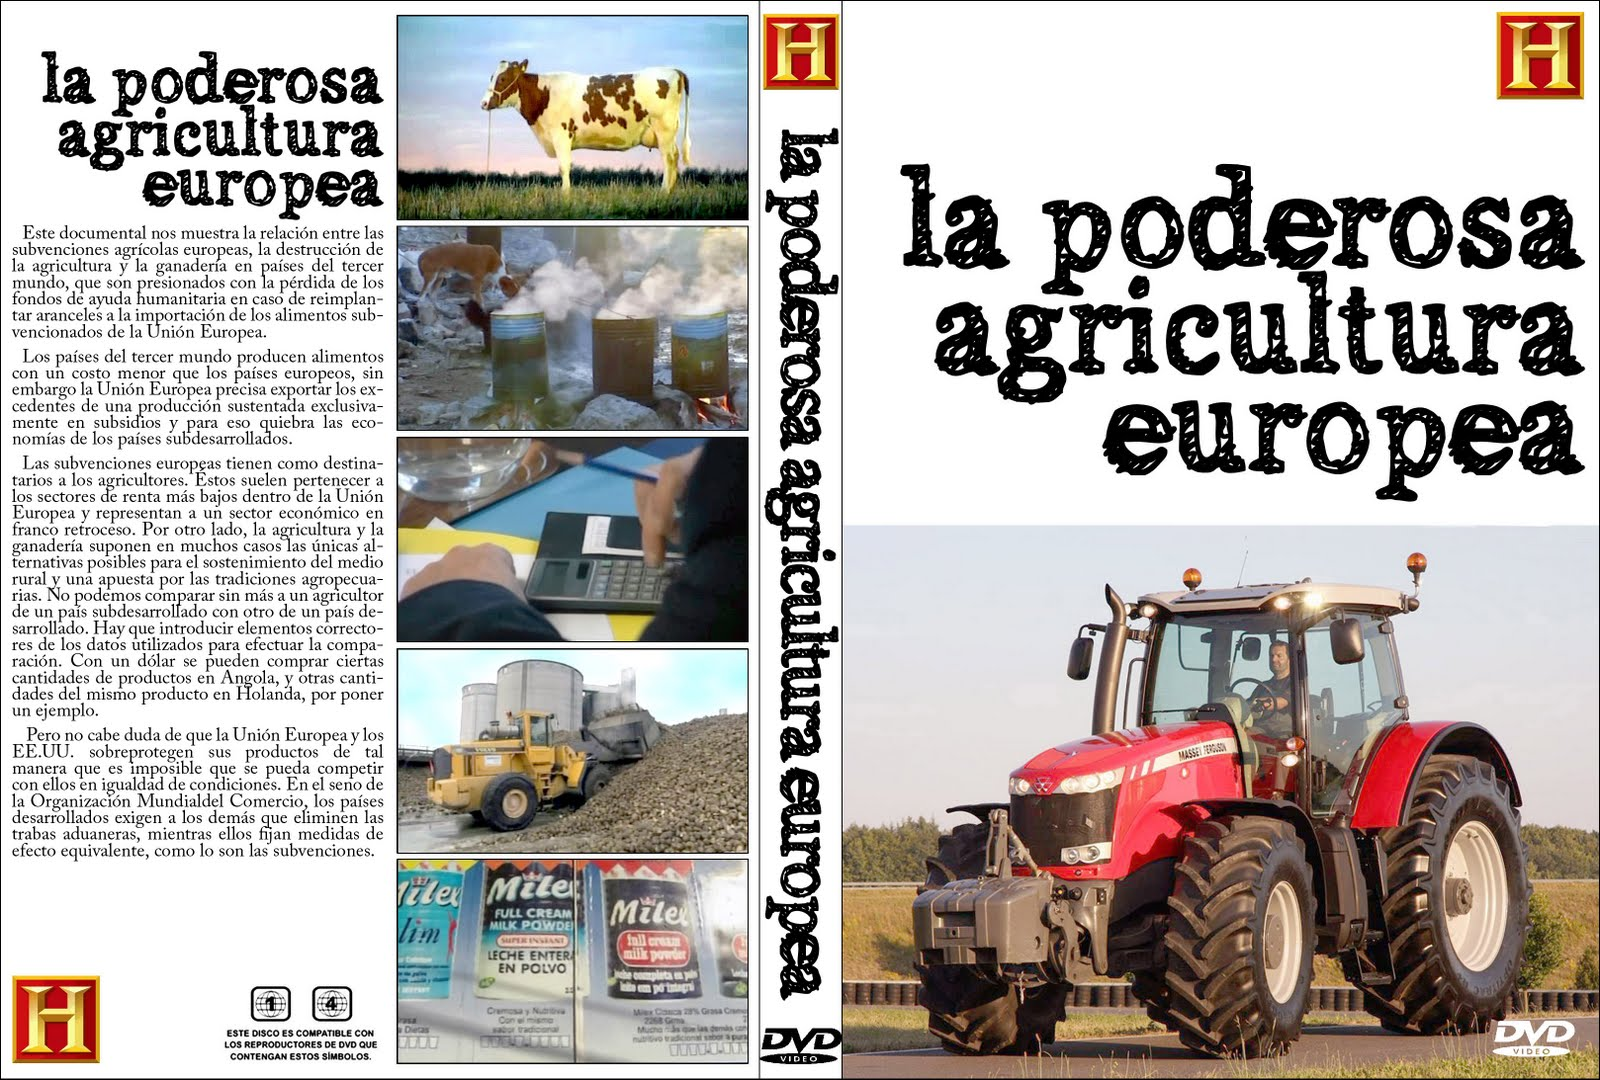 La poderosa agricultura europea.2004 (Documental Denuncia)..